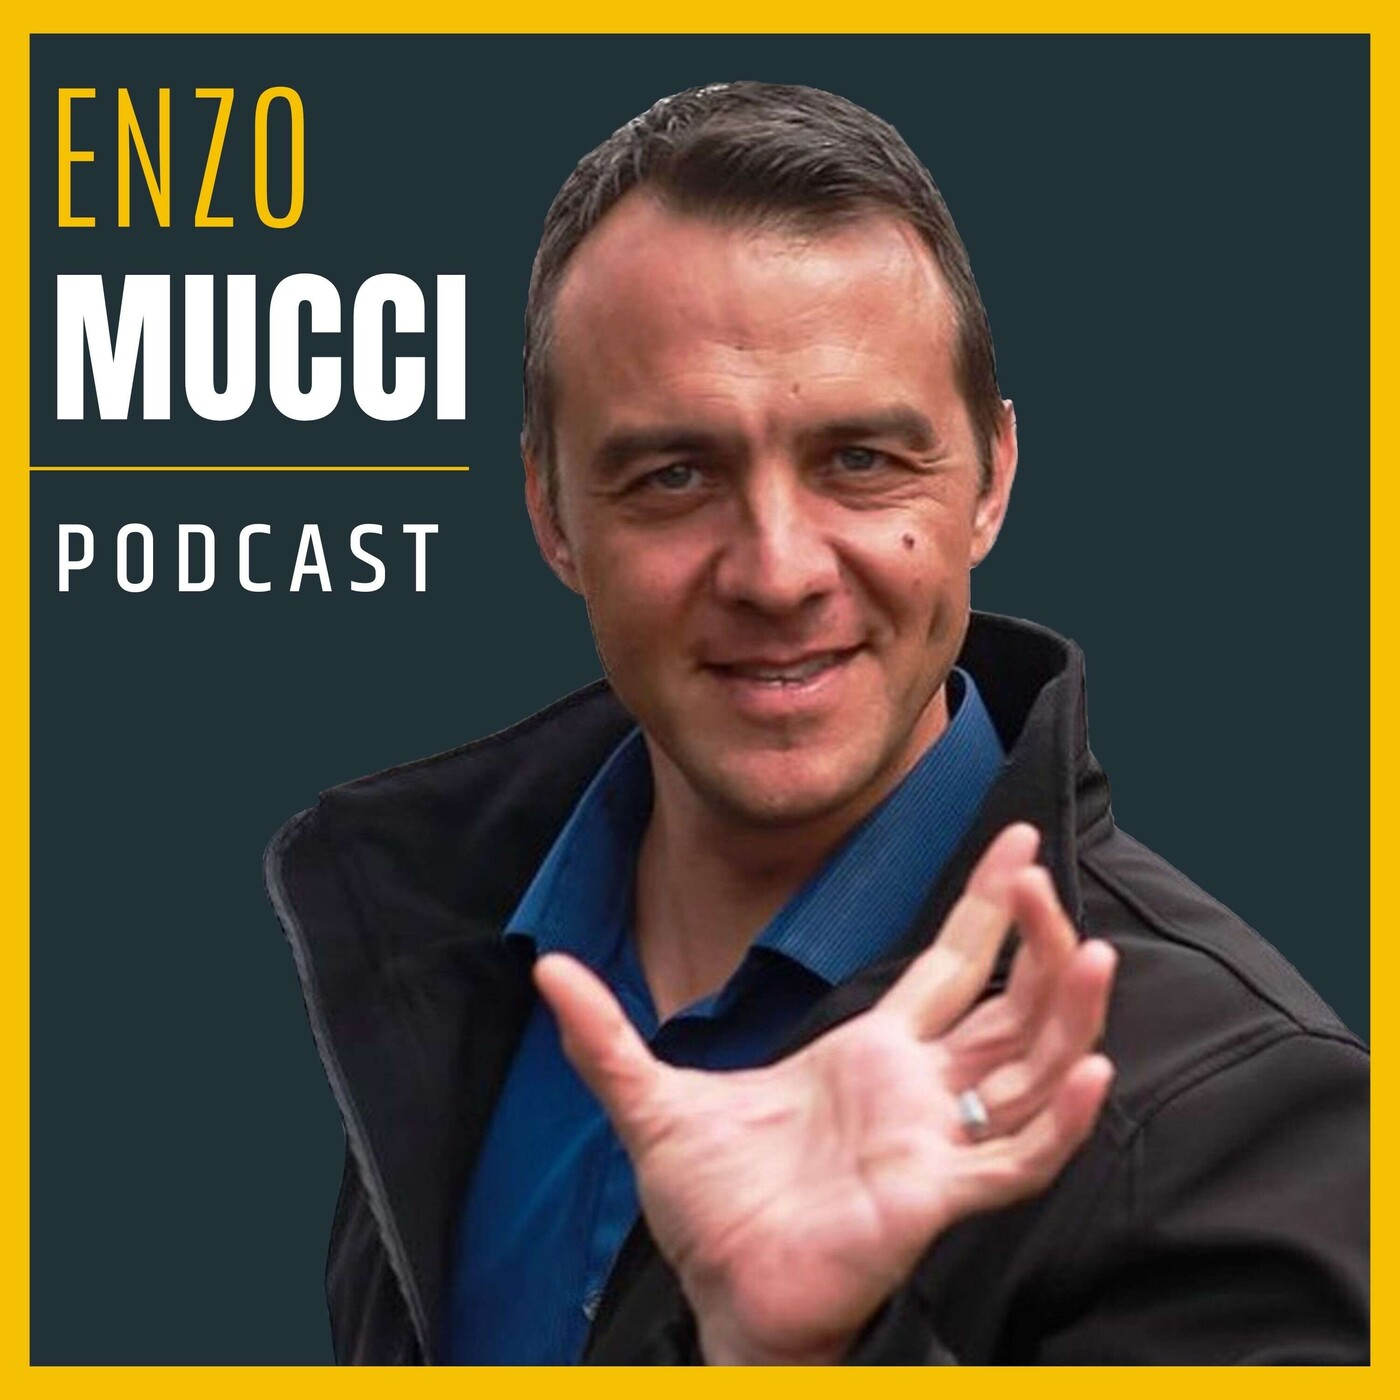 TRDC Show - Brian Sims How To Get Motorsport Sponsorship - Enzo Mucci S4 E30